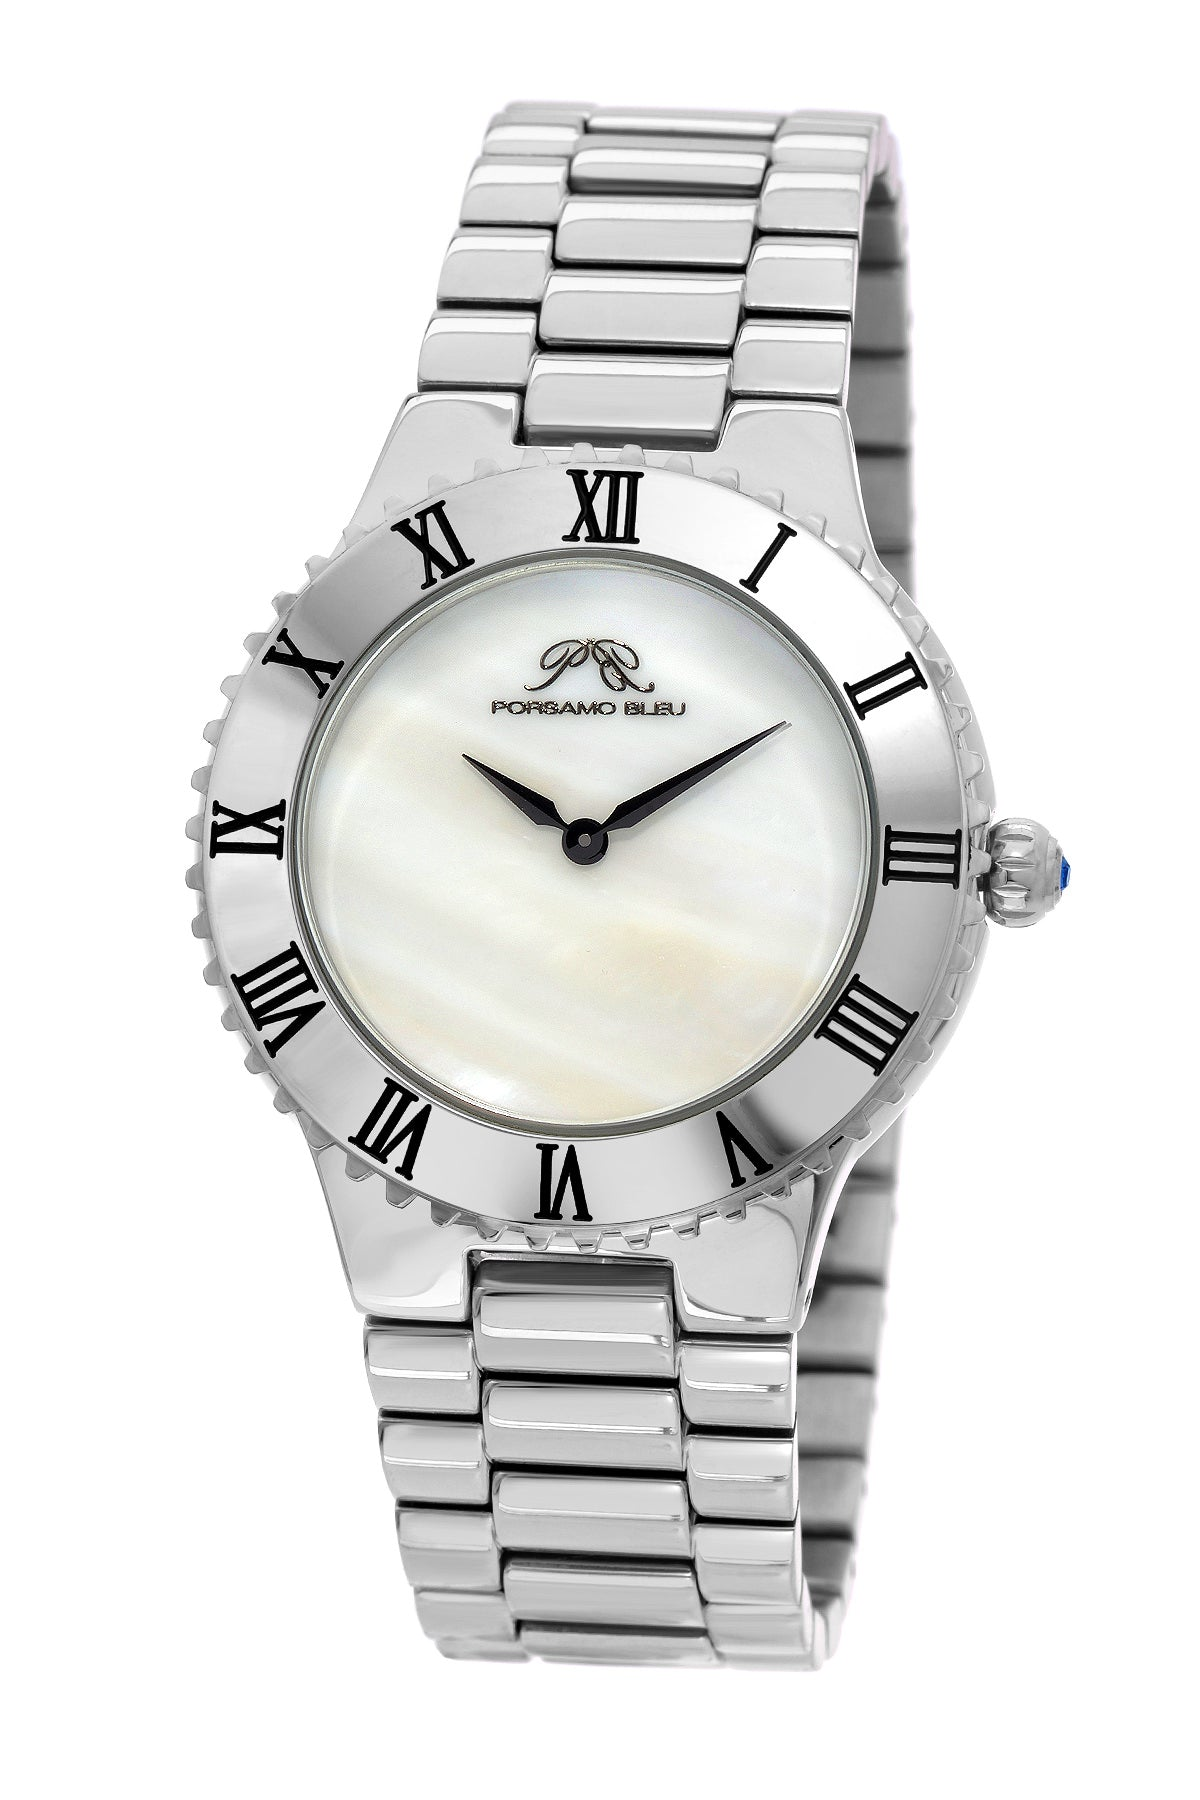 Porsamo Bleu Lexi luxury women's stainless steel watch, silver tone 941ALES